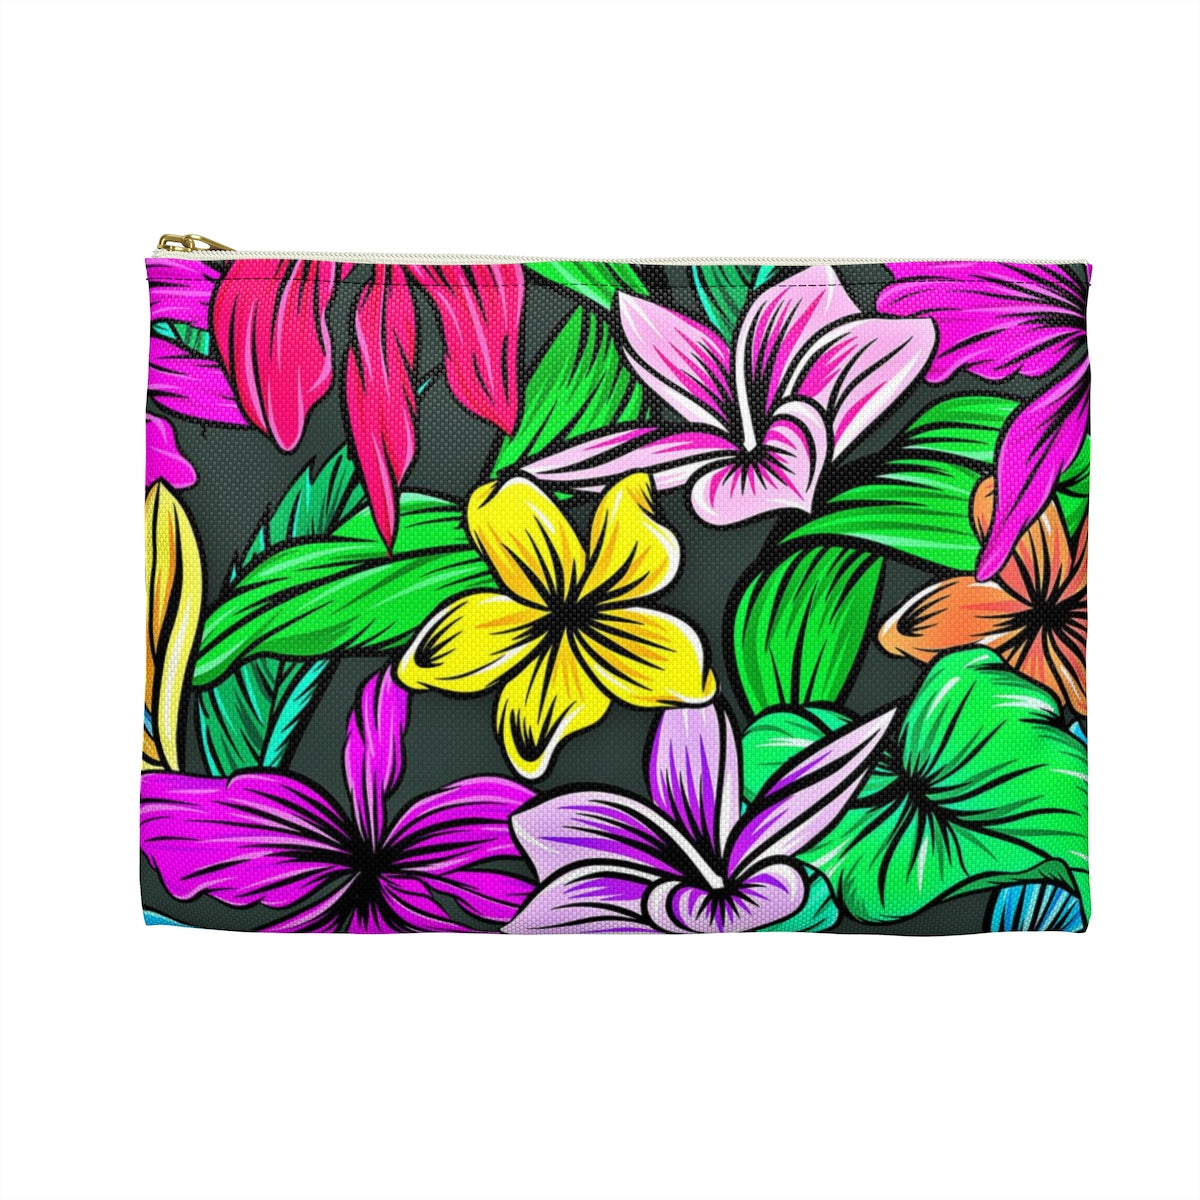 Accessory Pouch, Tropical Accessory Pouch, Floral Pouch, Zippered Pouch, Cosmetic Pouch, Pencil Case, Back to School Pouch, Gadget Pouch - jewelry-by-meesh